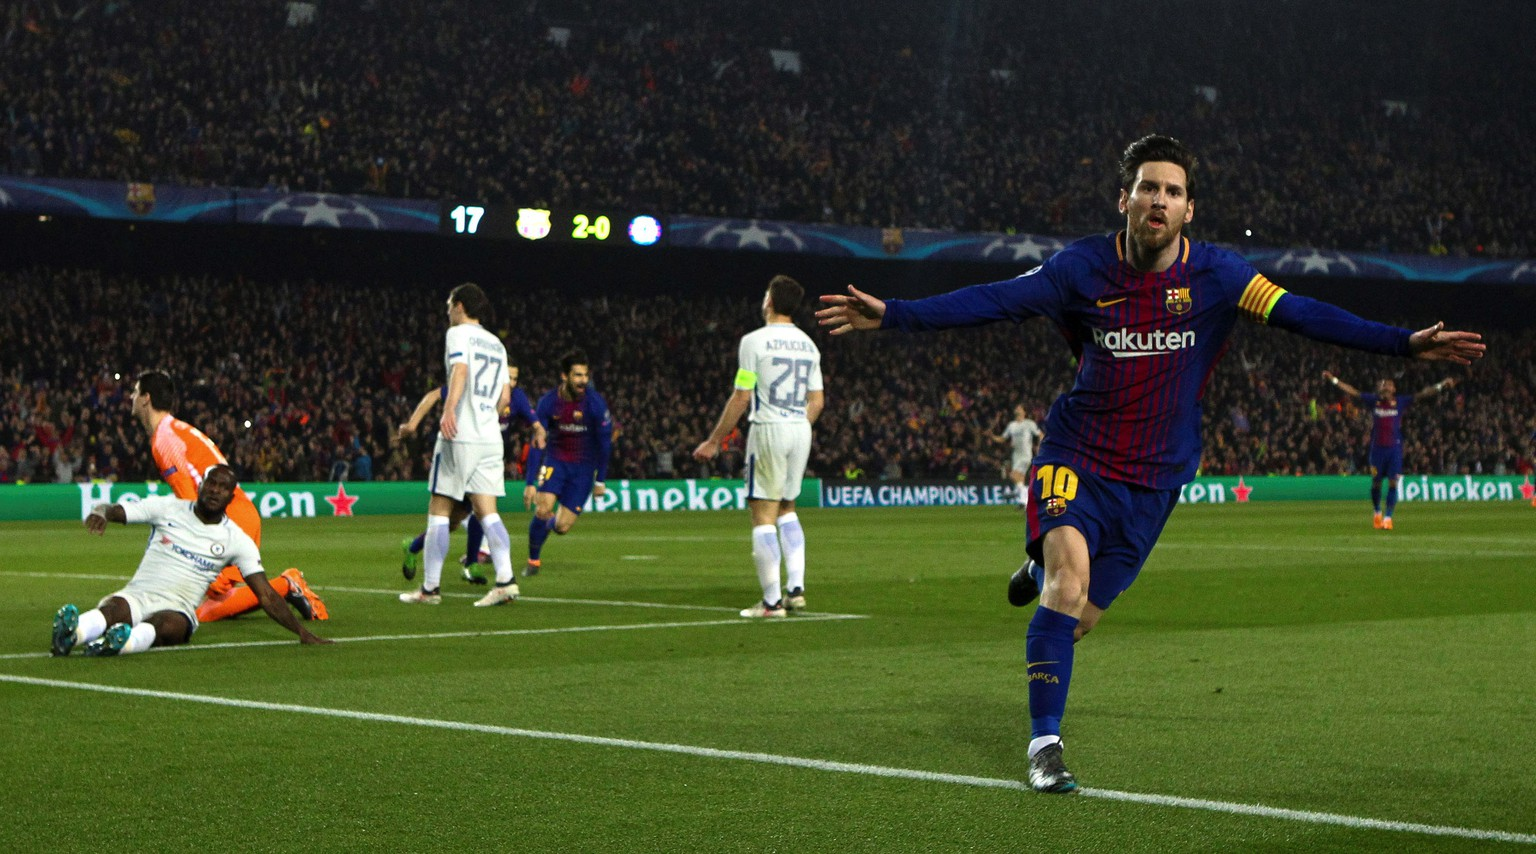 epa06604599 FC Barcelona's Lionel Messi (R) celebrates a goal  during the UEFA Champions League Round of 16, second leg soccer match between FC Barcelona and Chelsea FC at Nou Camp stadium in Barcelona, Spain, 14 March 2018.  EPA/ENRIC FONTCUBERTA